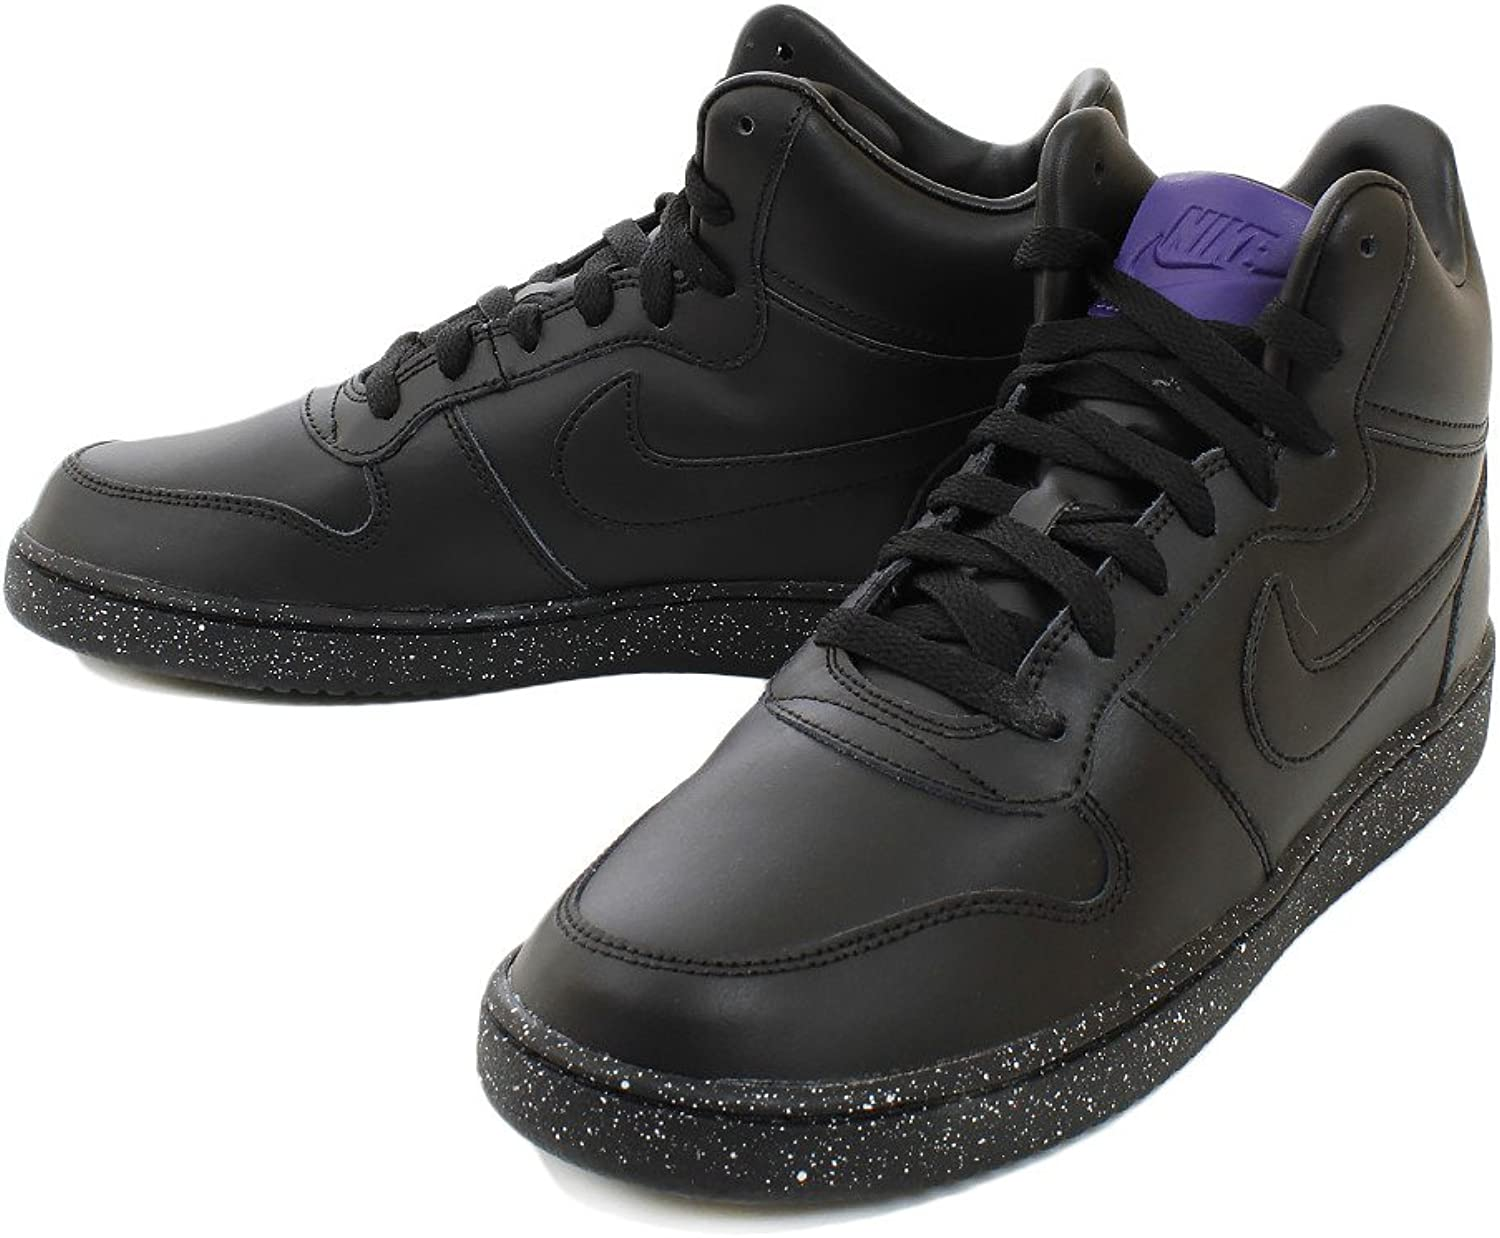 Nike Court Bgoldugh Mid Se Mens Hi Top Trainers 916759 Sneakers shoes